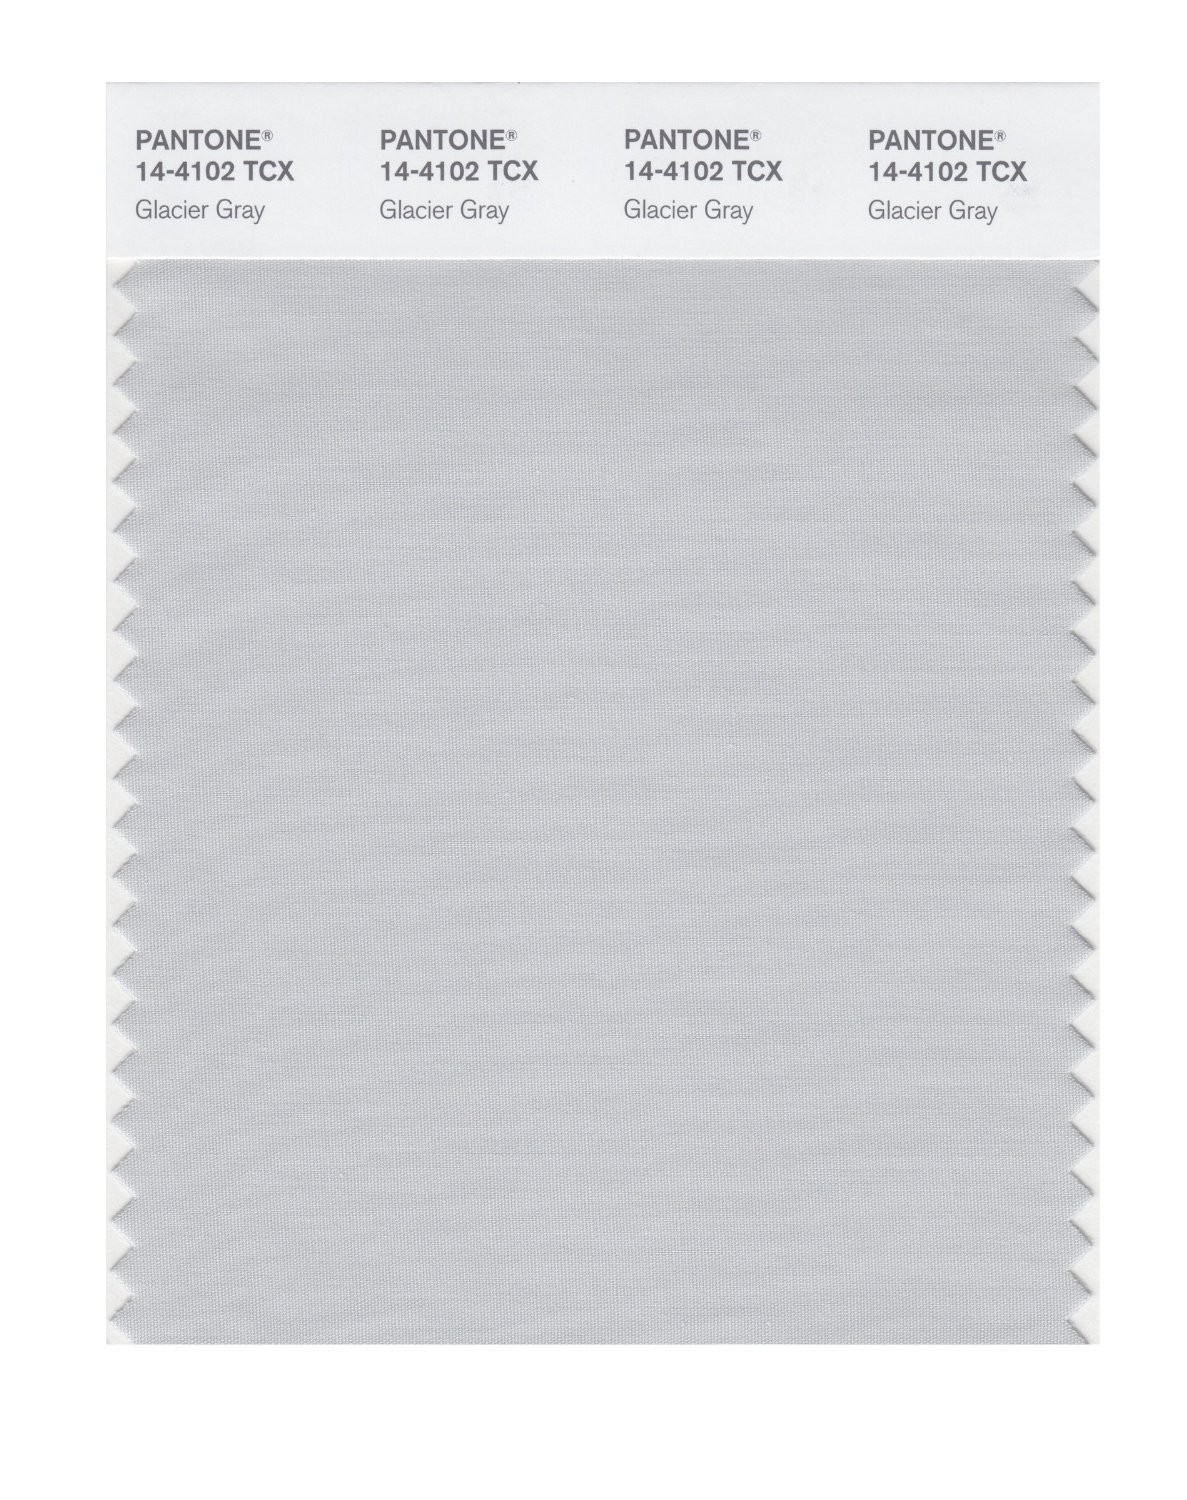 Pantone 14-4102 TCX Swatch Card Glacier Gray